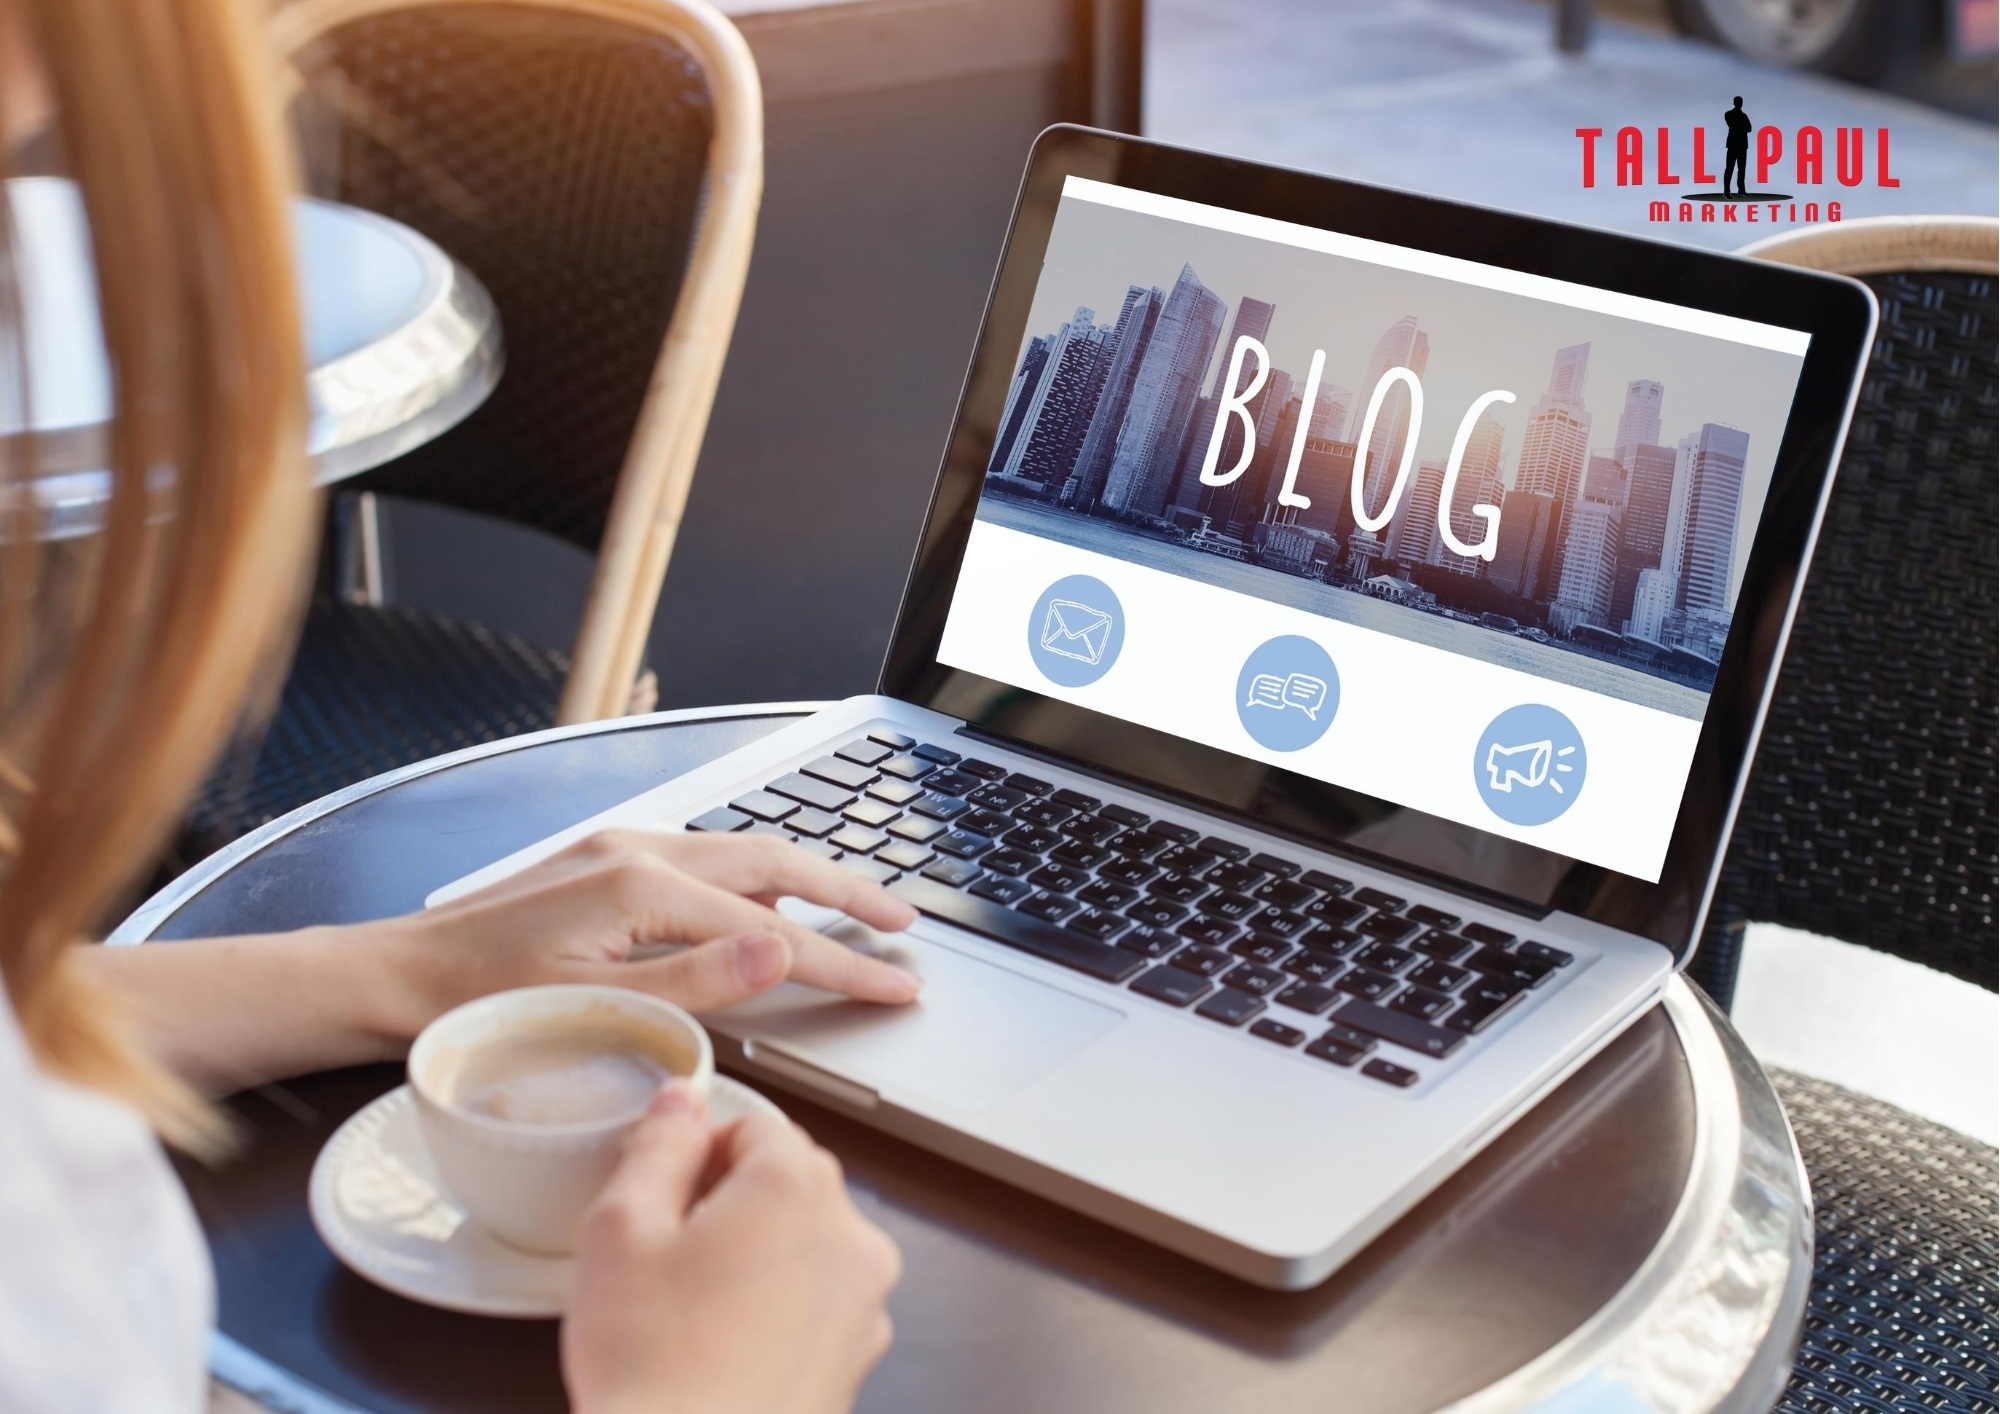 The first ever blog was in 1999, but in 2020 a business blog in one of half a billion internet blogs - Tall Paul Marketing - NI freelance Copywriter